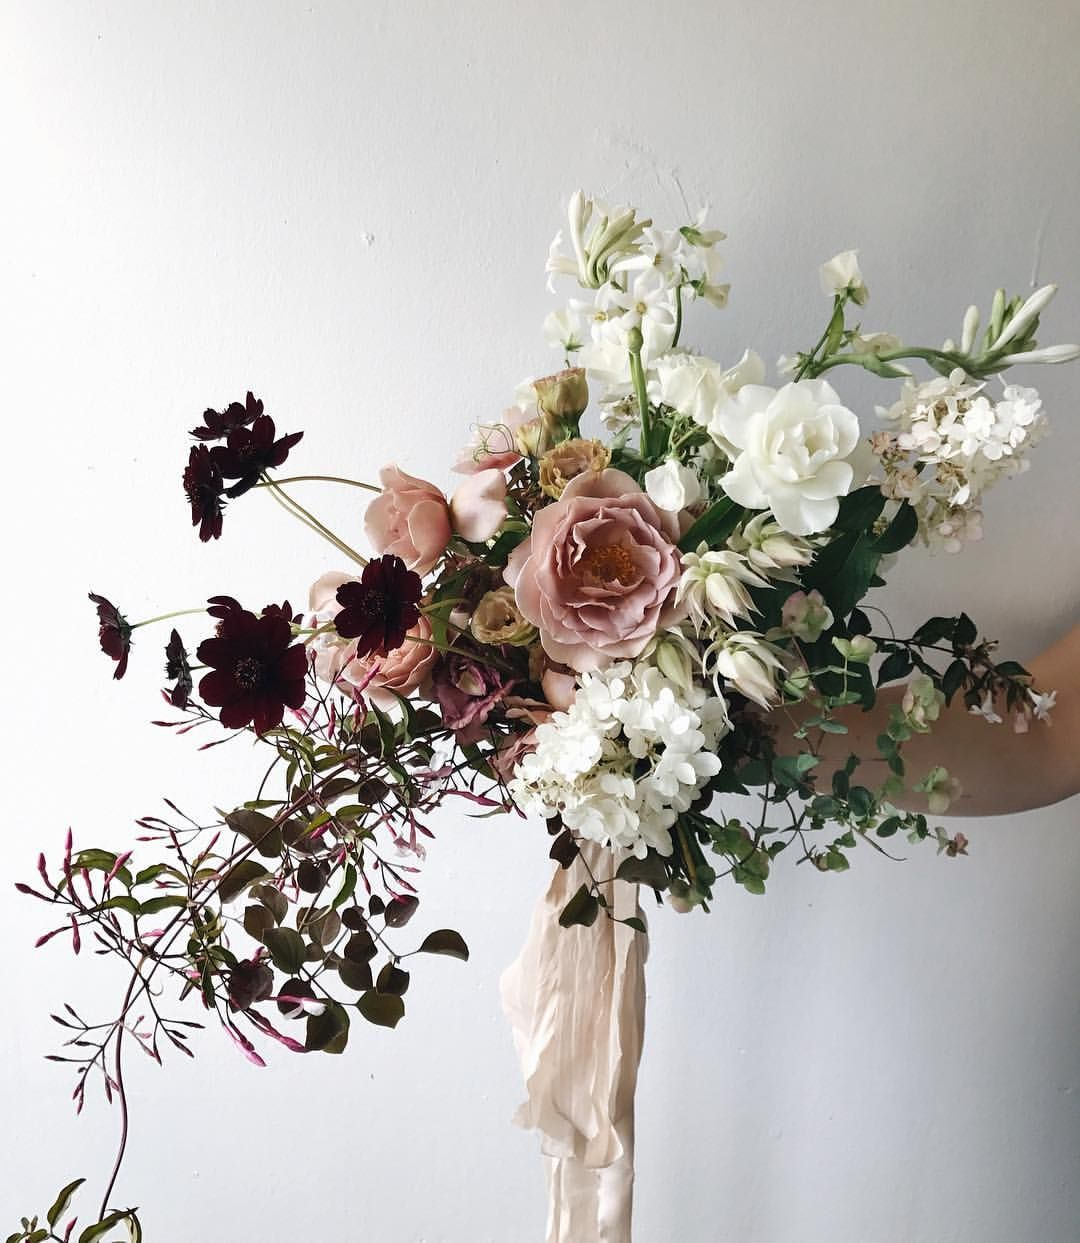 Pin By Mariette Marais On Flowers Pinterest Flowers Bouquet And